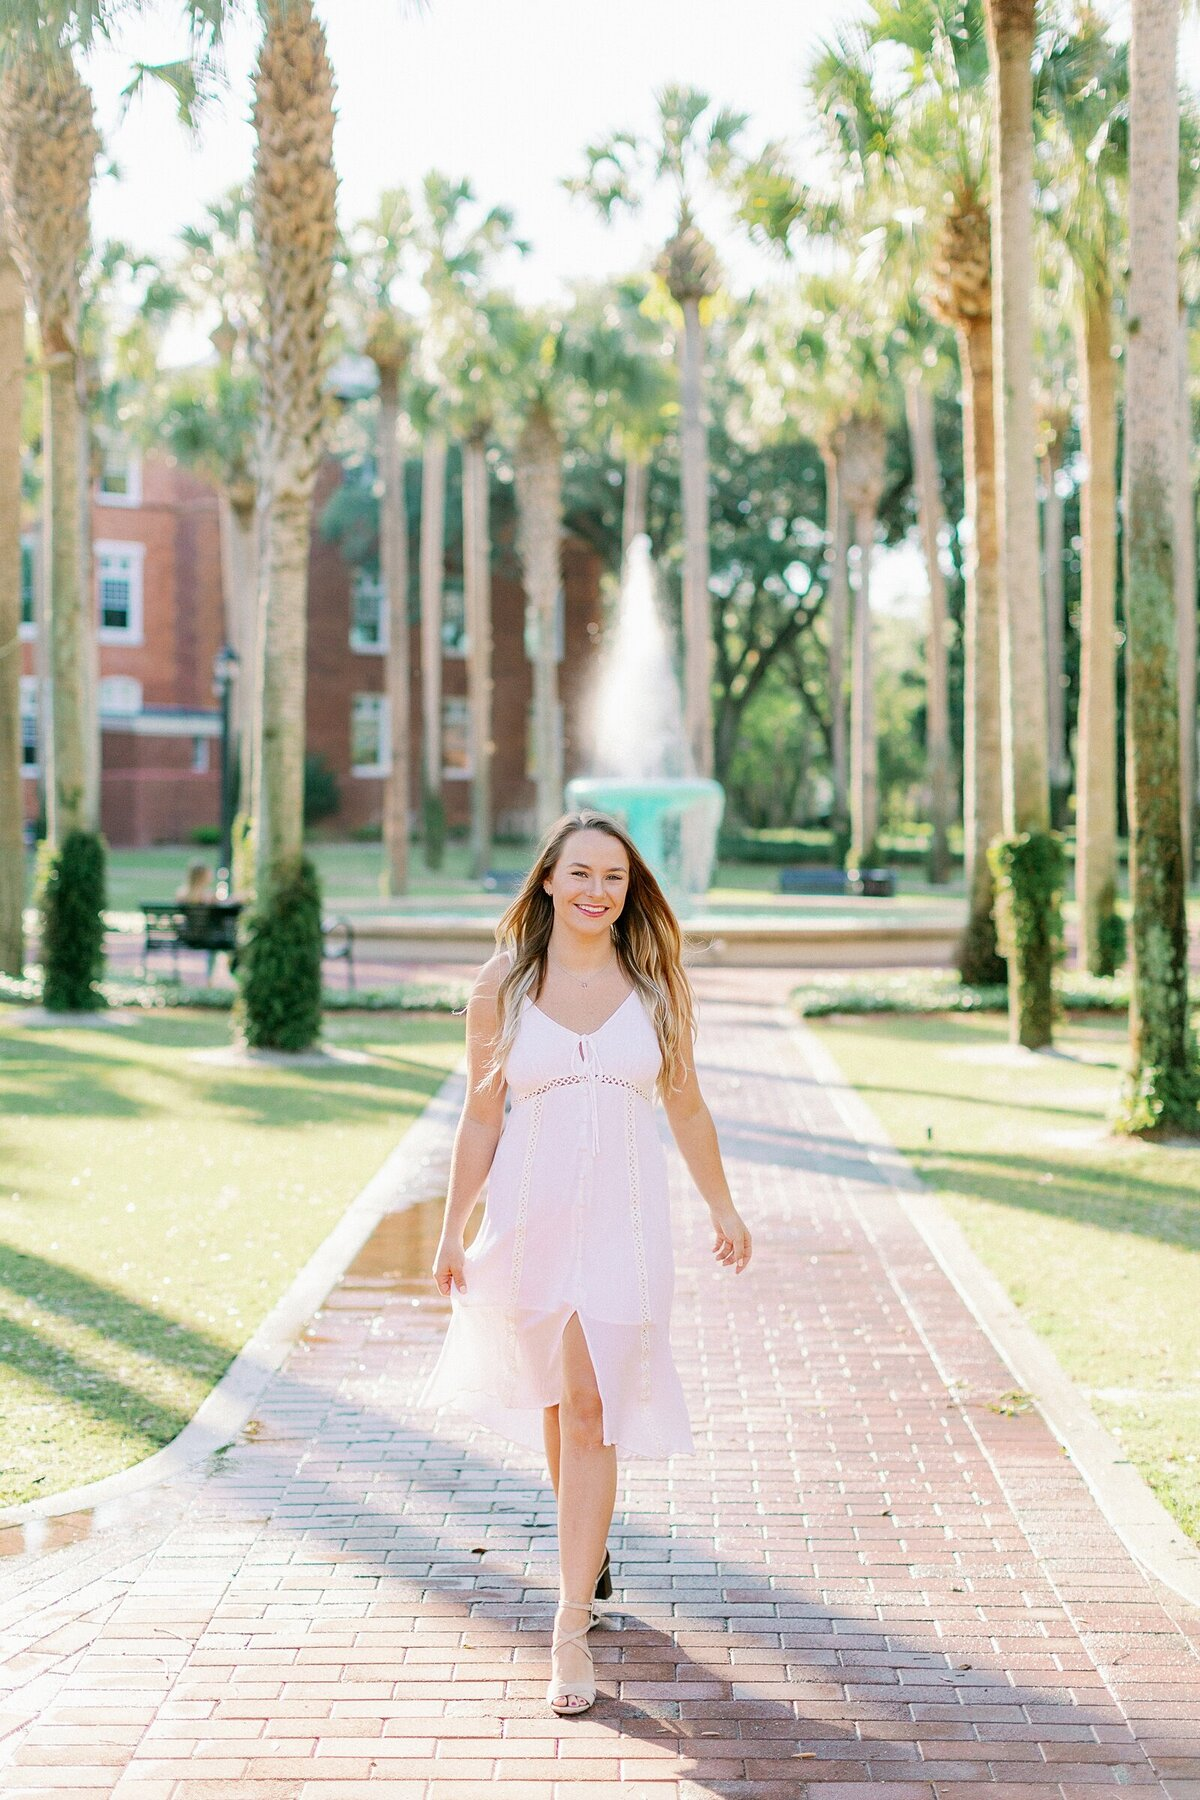 IPhillips Stetson College DeLand Florida Senior Portraits Photographer Casie Marie Photography-7